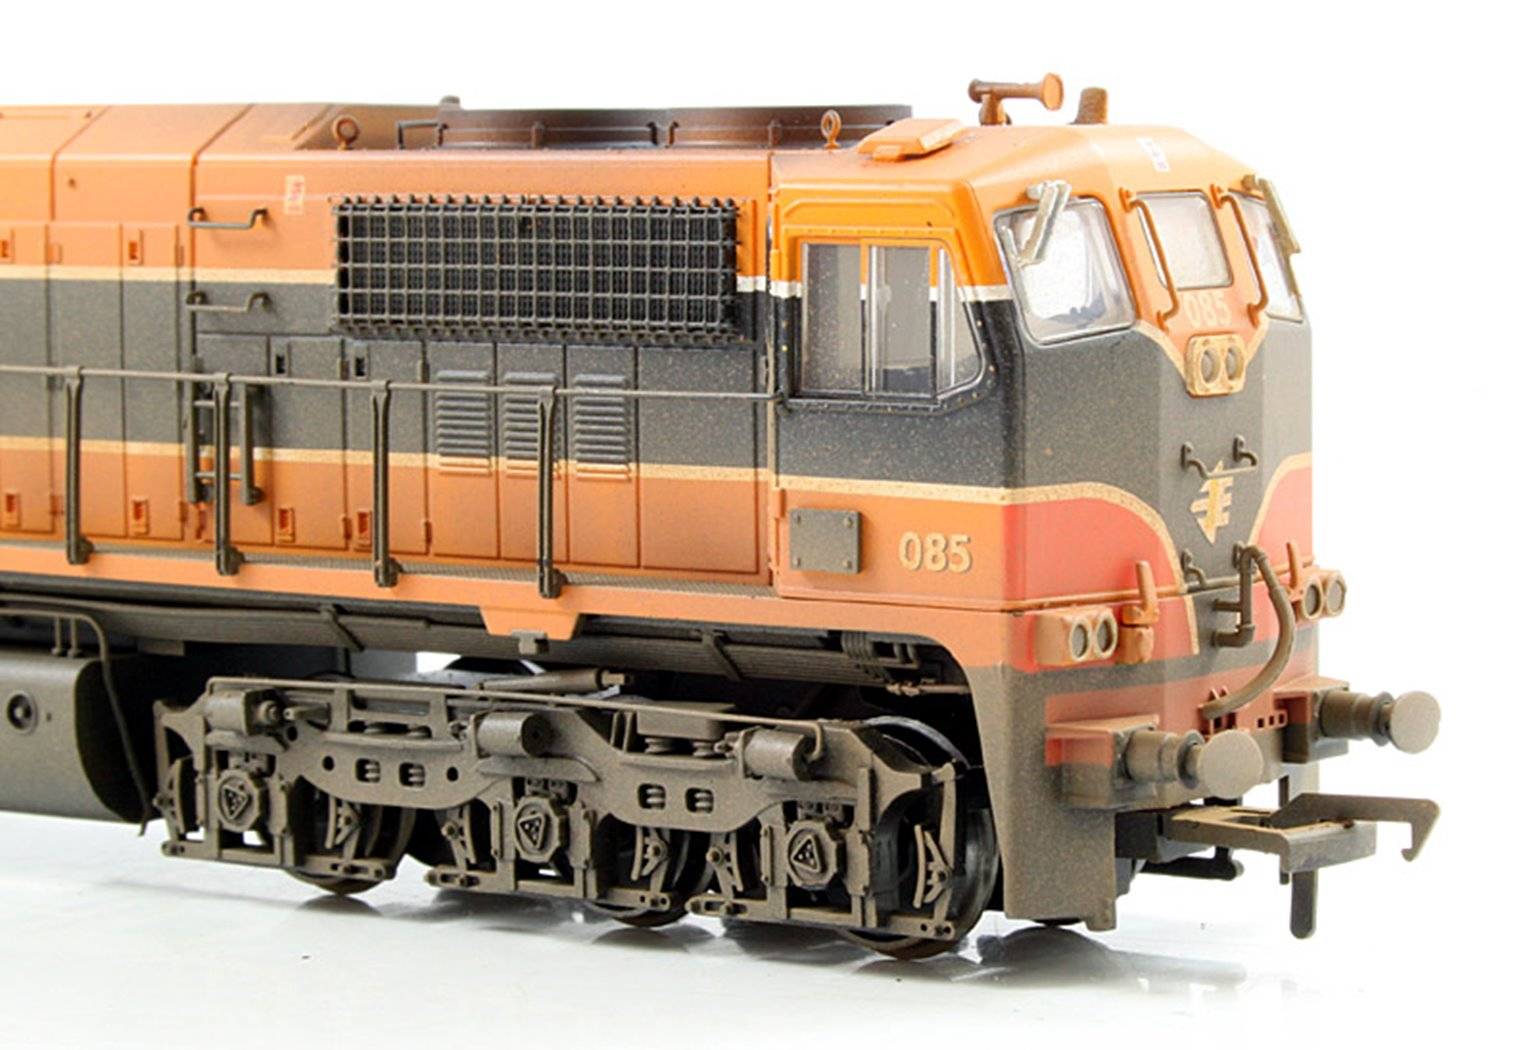 MM0085 Class 071 IE Orange Livery Diesel Locomotive #085 ...